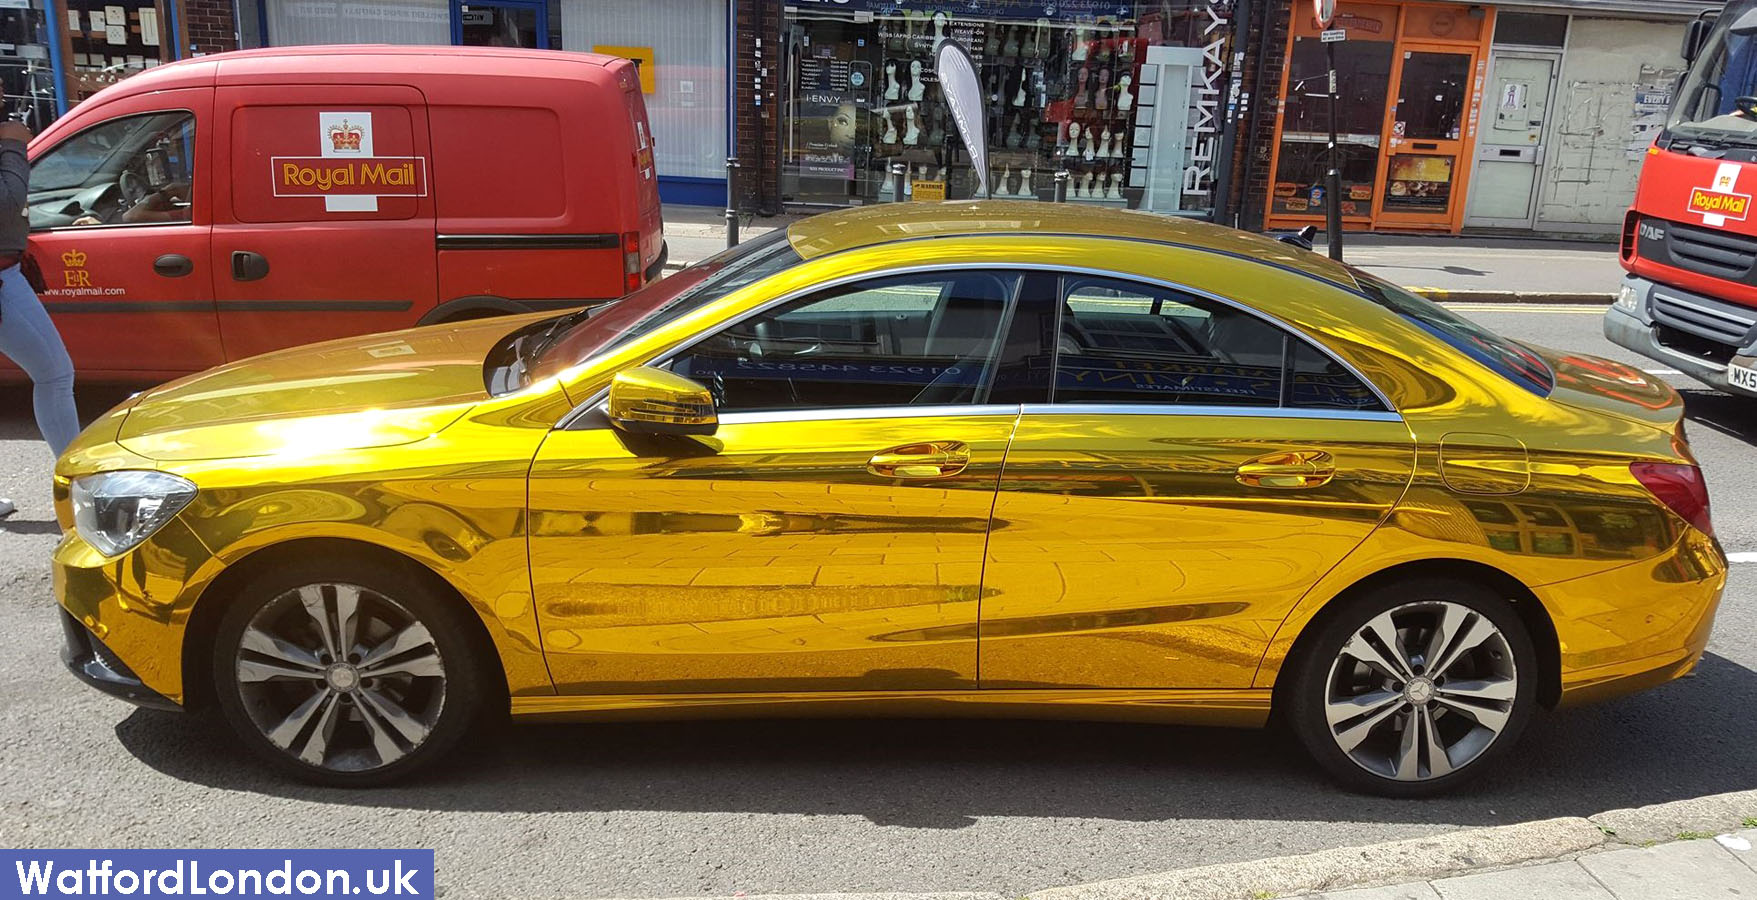 Gold Chrome Mercedes Benz Car Spotted in Watford 🚗